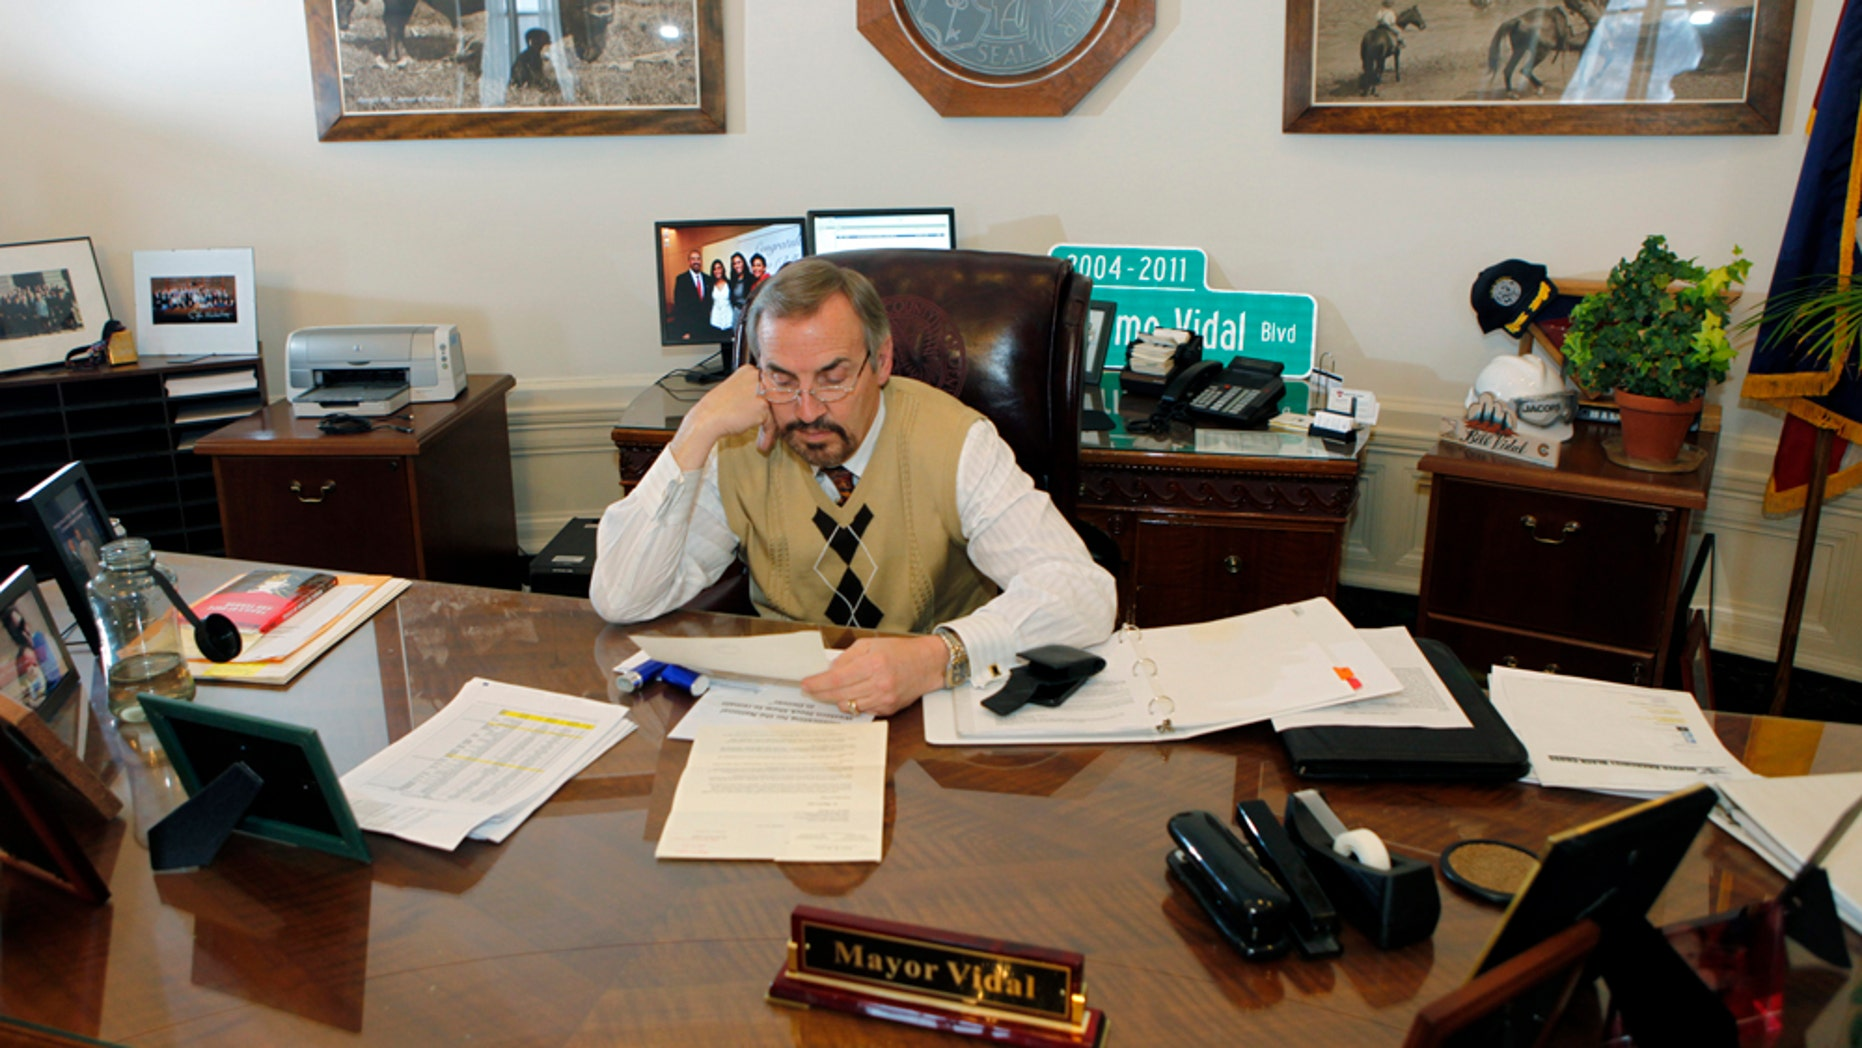 """This photo taken on Tuesday, Feb. 1, 2011 shows Mayor Guillermo """"Bill"""" Vidal at work in his office in Denver. (AP Photo/Ed Andrieski)"""